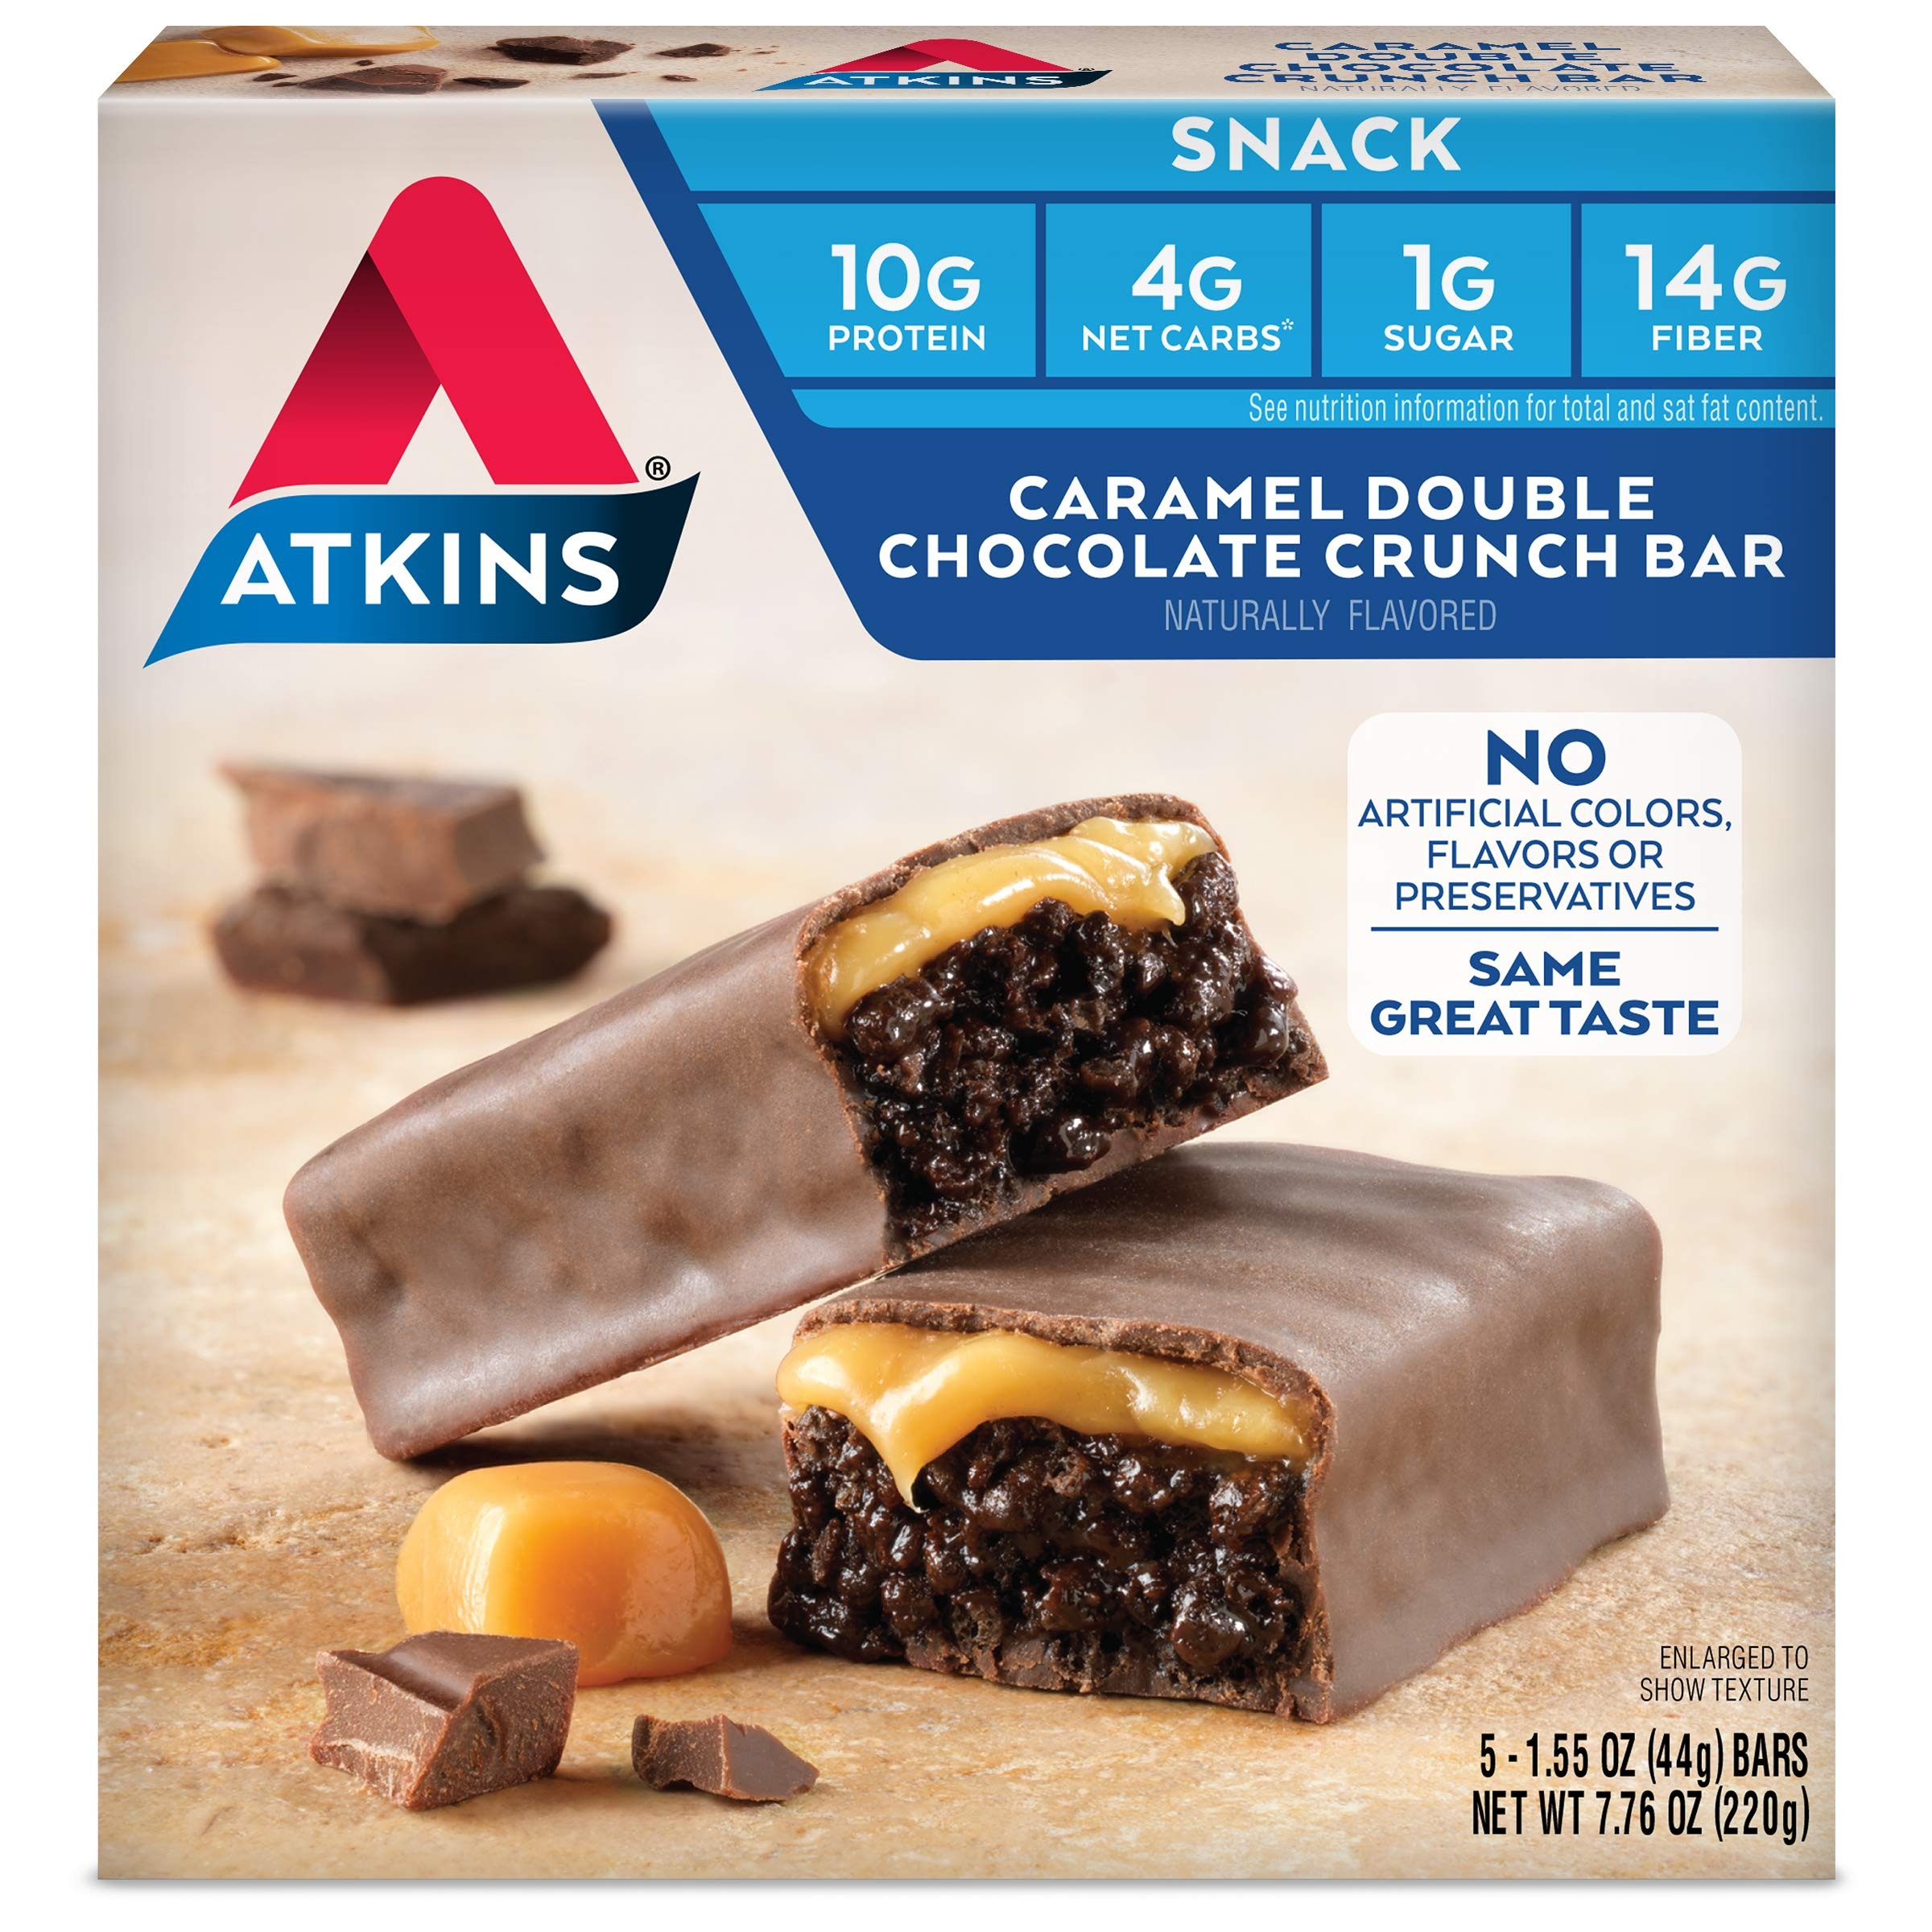 Atkins Caramel Double Chocolate Crunch Bars. Rich and Decadent Treat with Low Sugar and Net Carbs. Great Source of Protein and Fiber. 1.55 oz per Bar (5 Bars) by Atkins